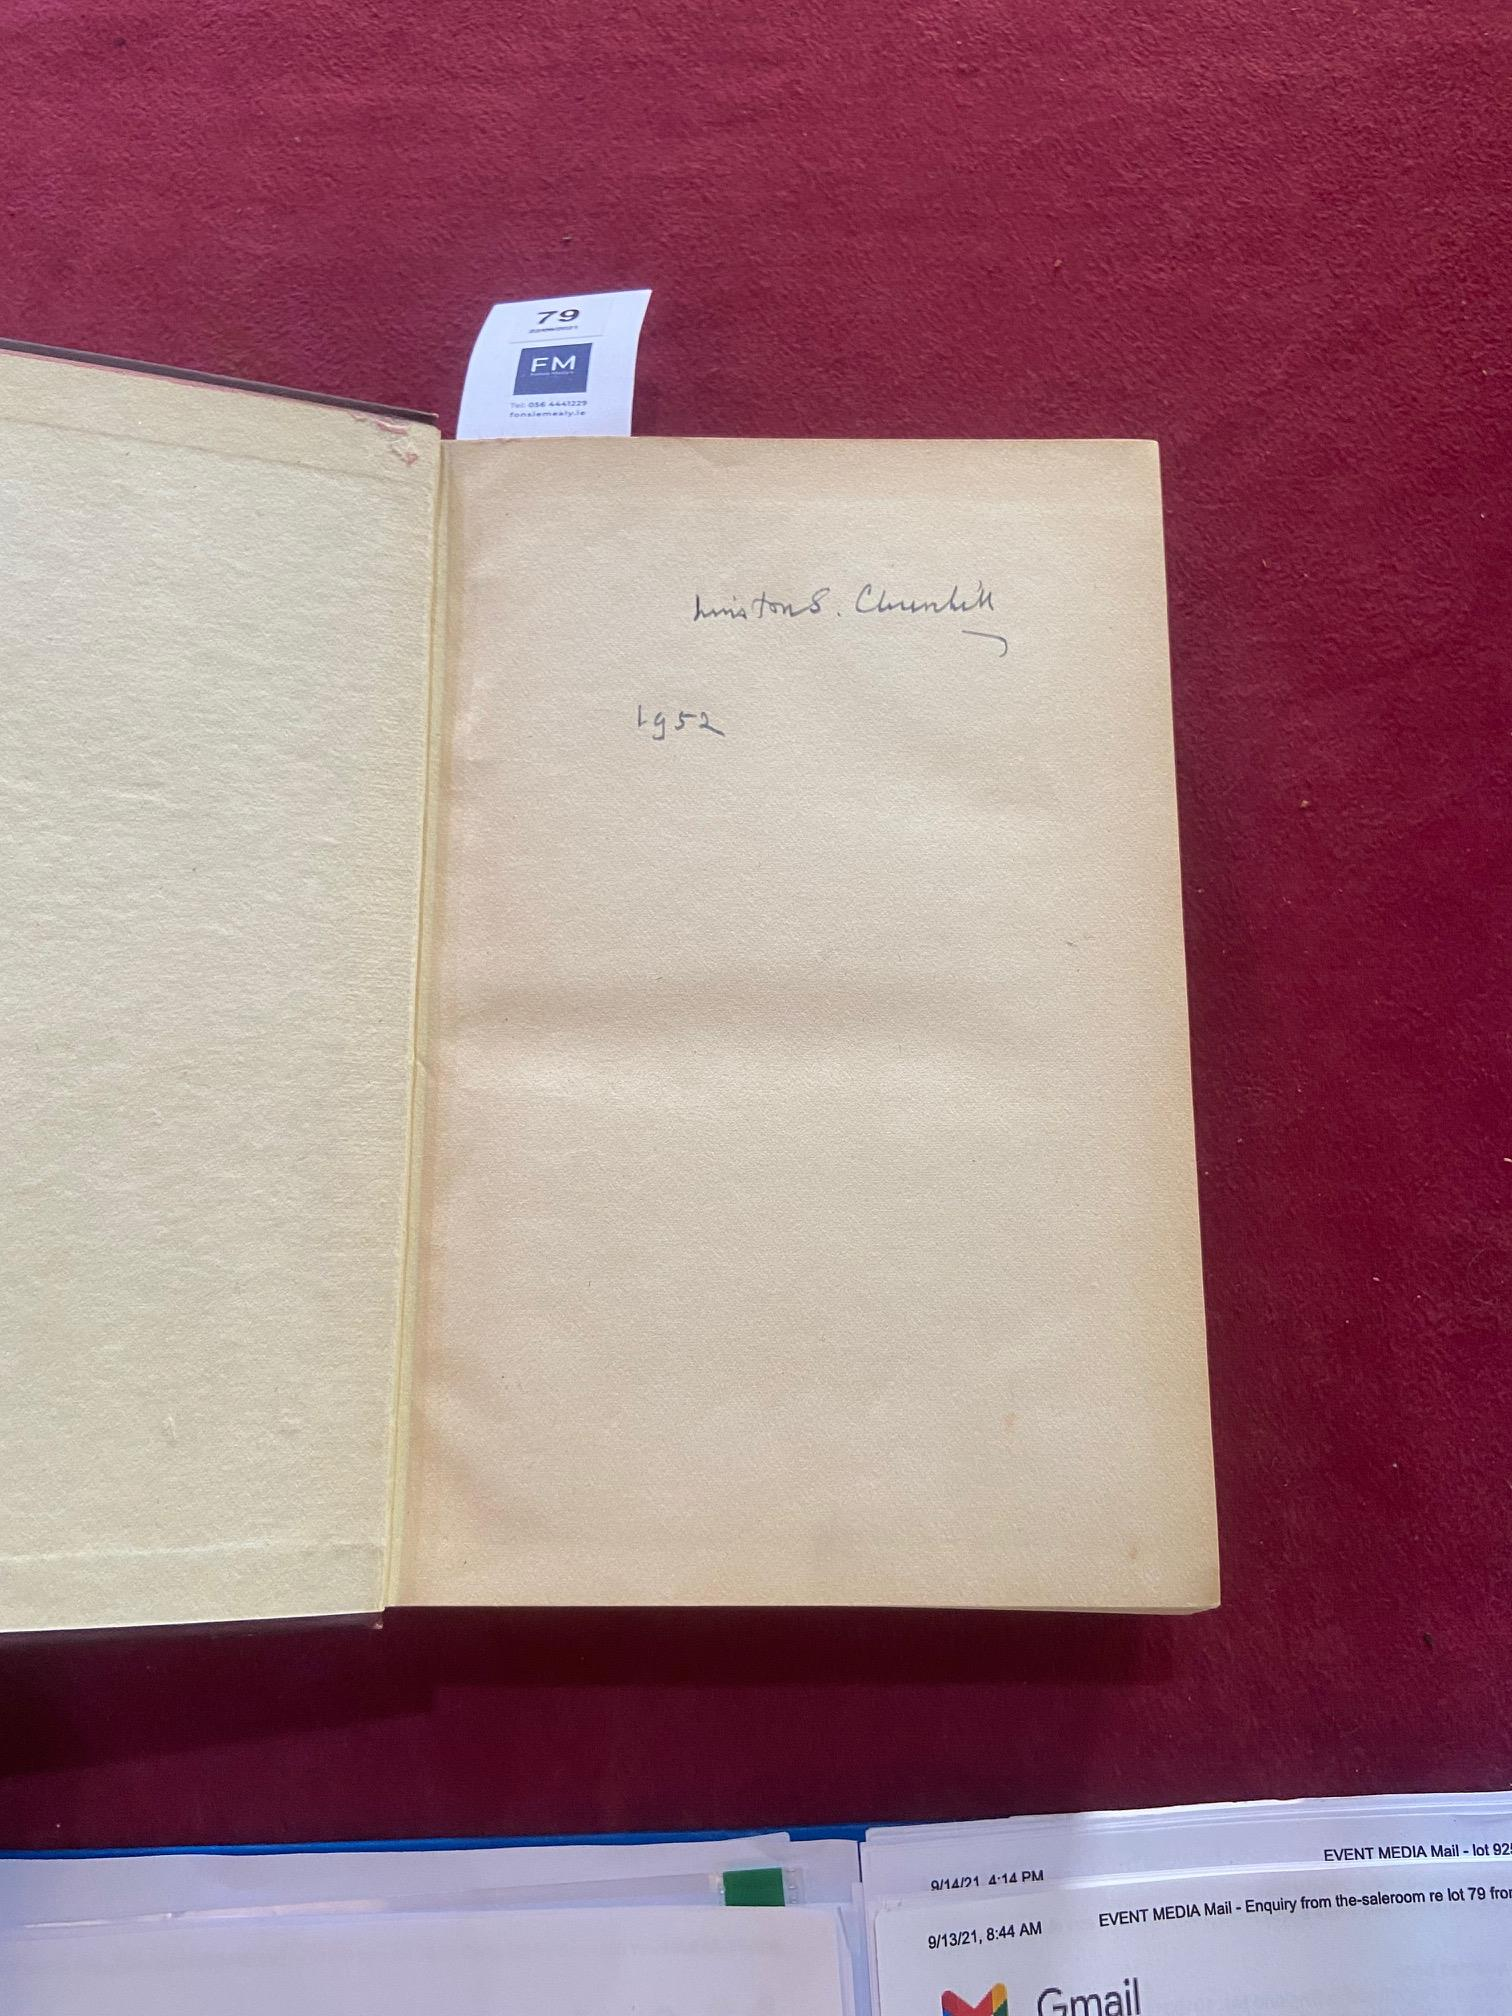 Signed by the Authorÿ Churchill (Winston S.)ÿTheir Finest Hour, Second World War, Vol. II only, - Image 10 of 22